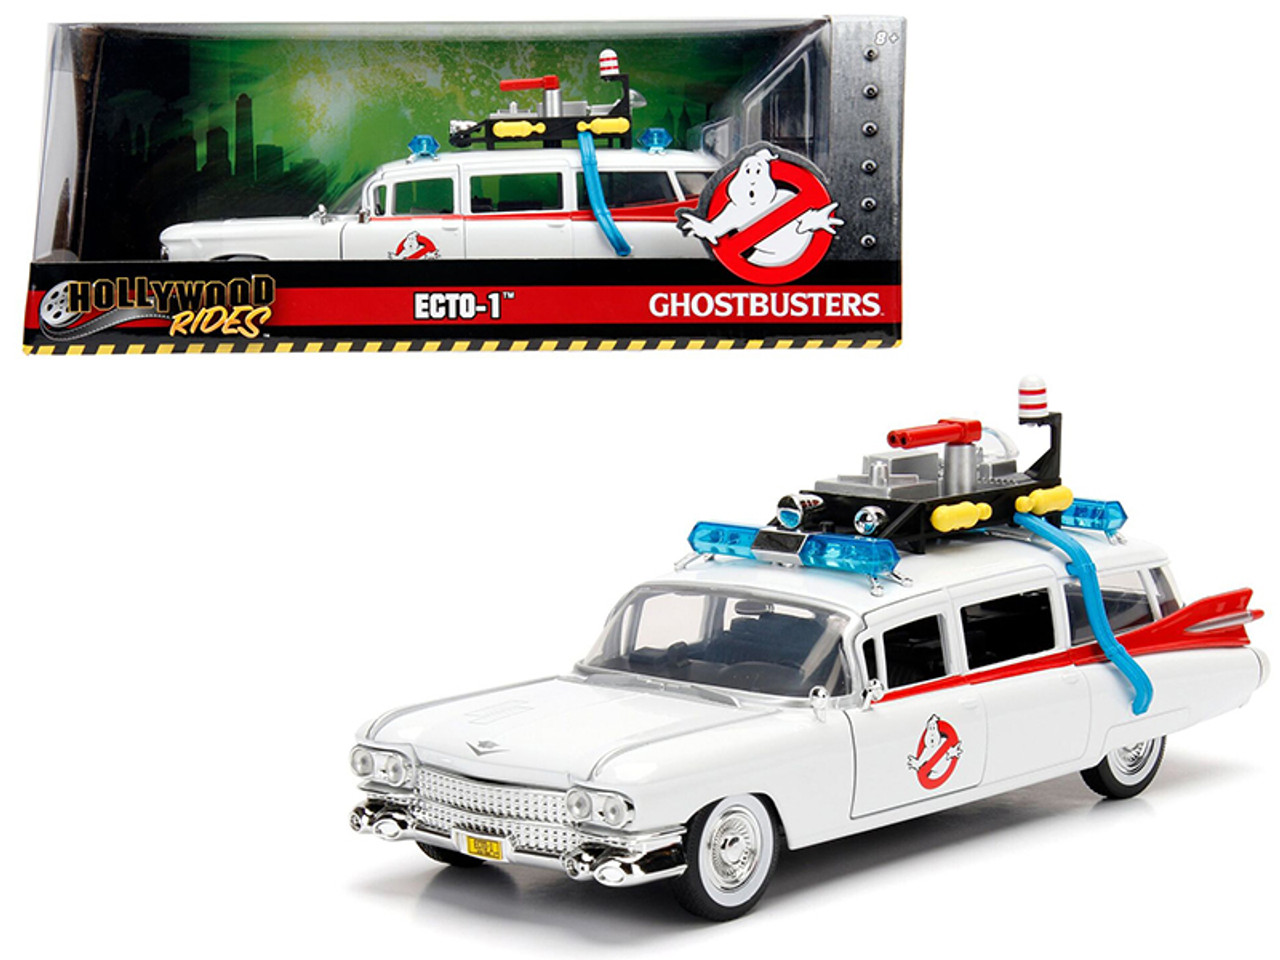 1 24 Jada 1959 Cadillac Ambulance Ecto 1 From Ghostbusters Movie